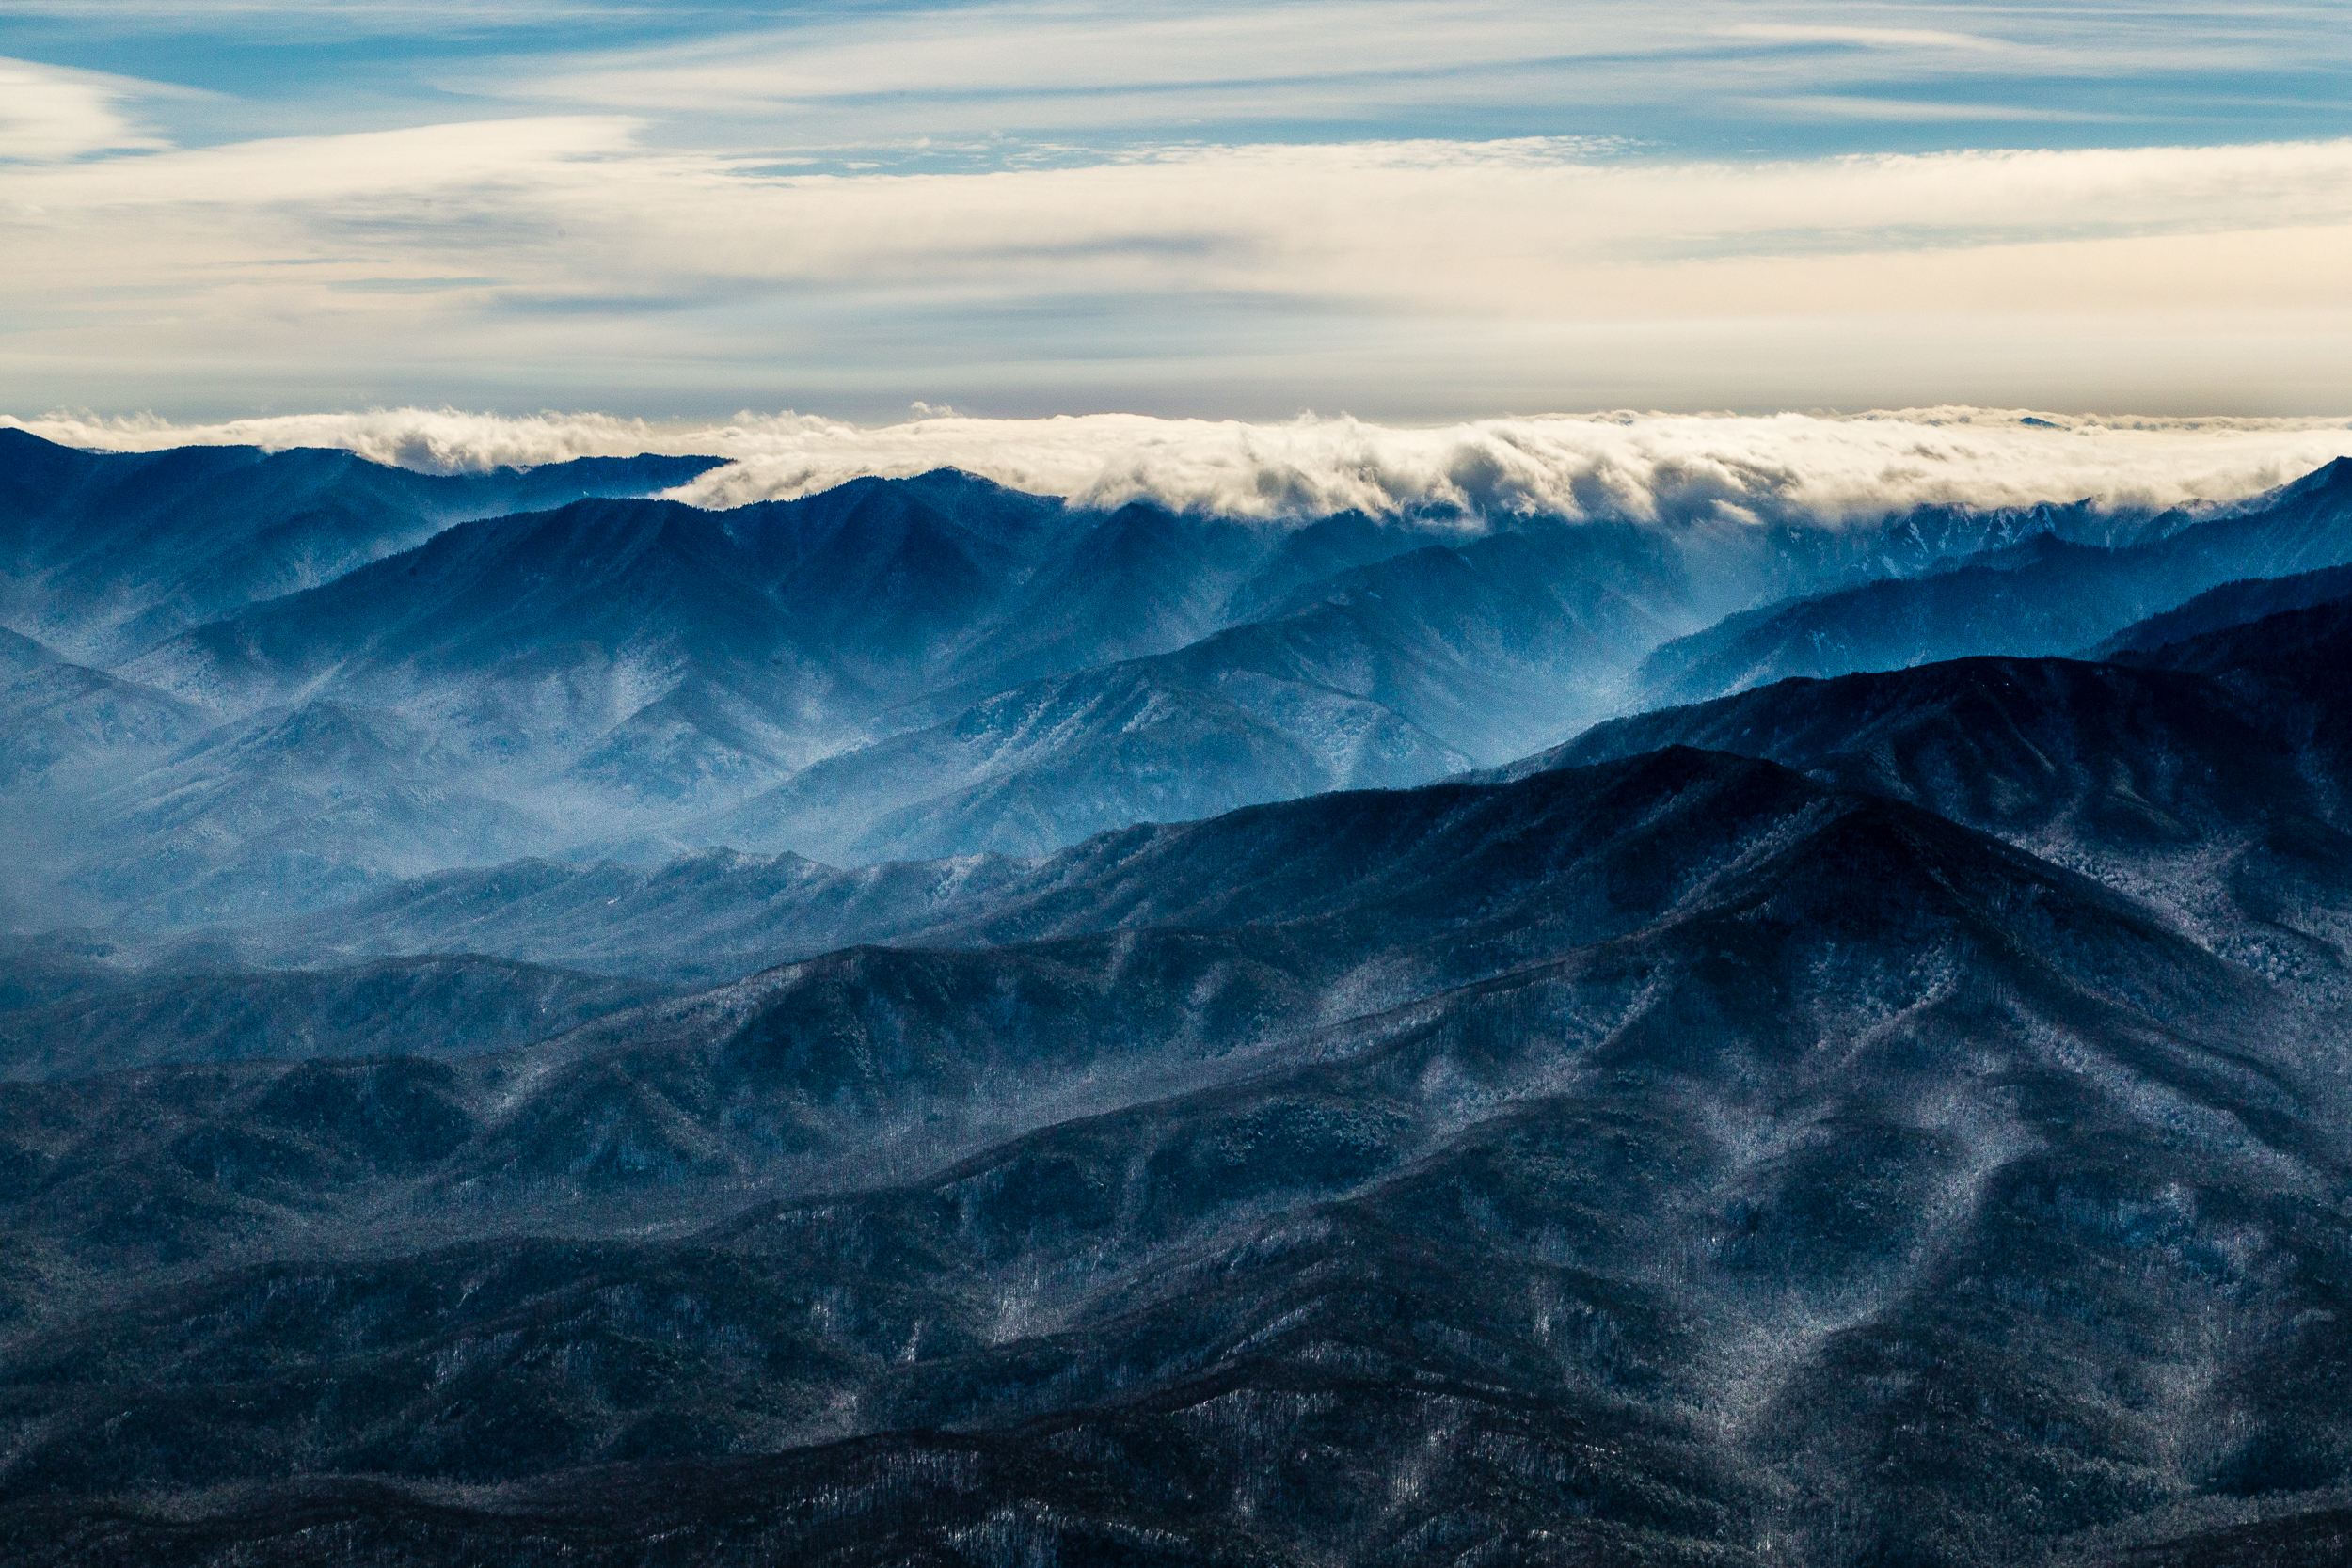 Low cloud layer atop the Great Smoky Mountains.